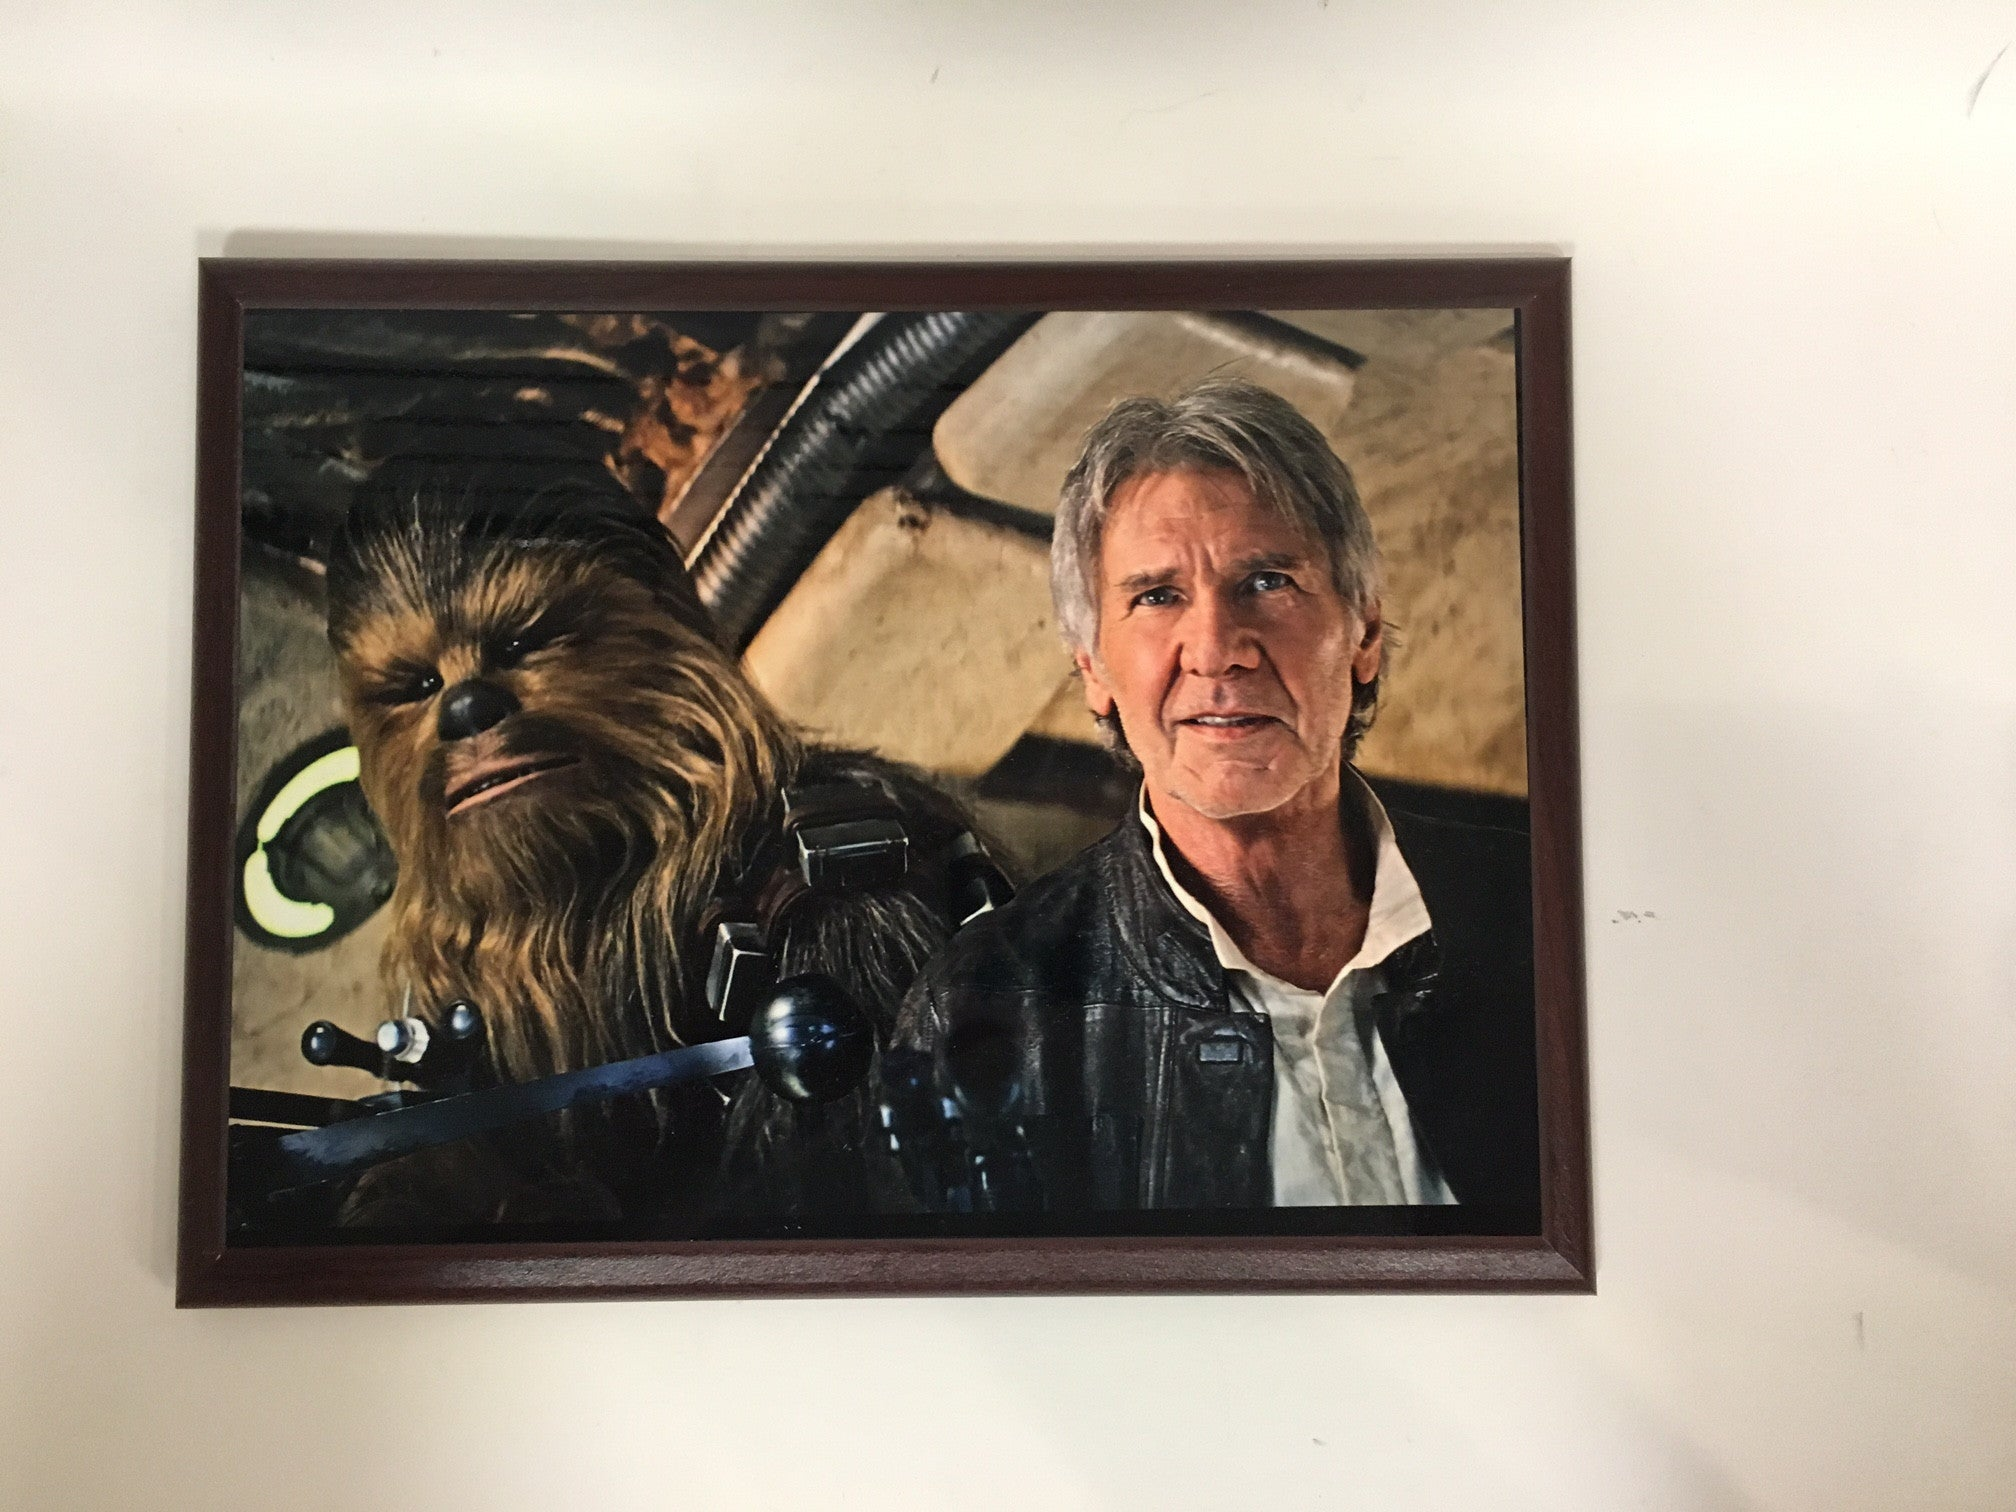 Star Wars - Han Solo and Chewbacca Plaque